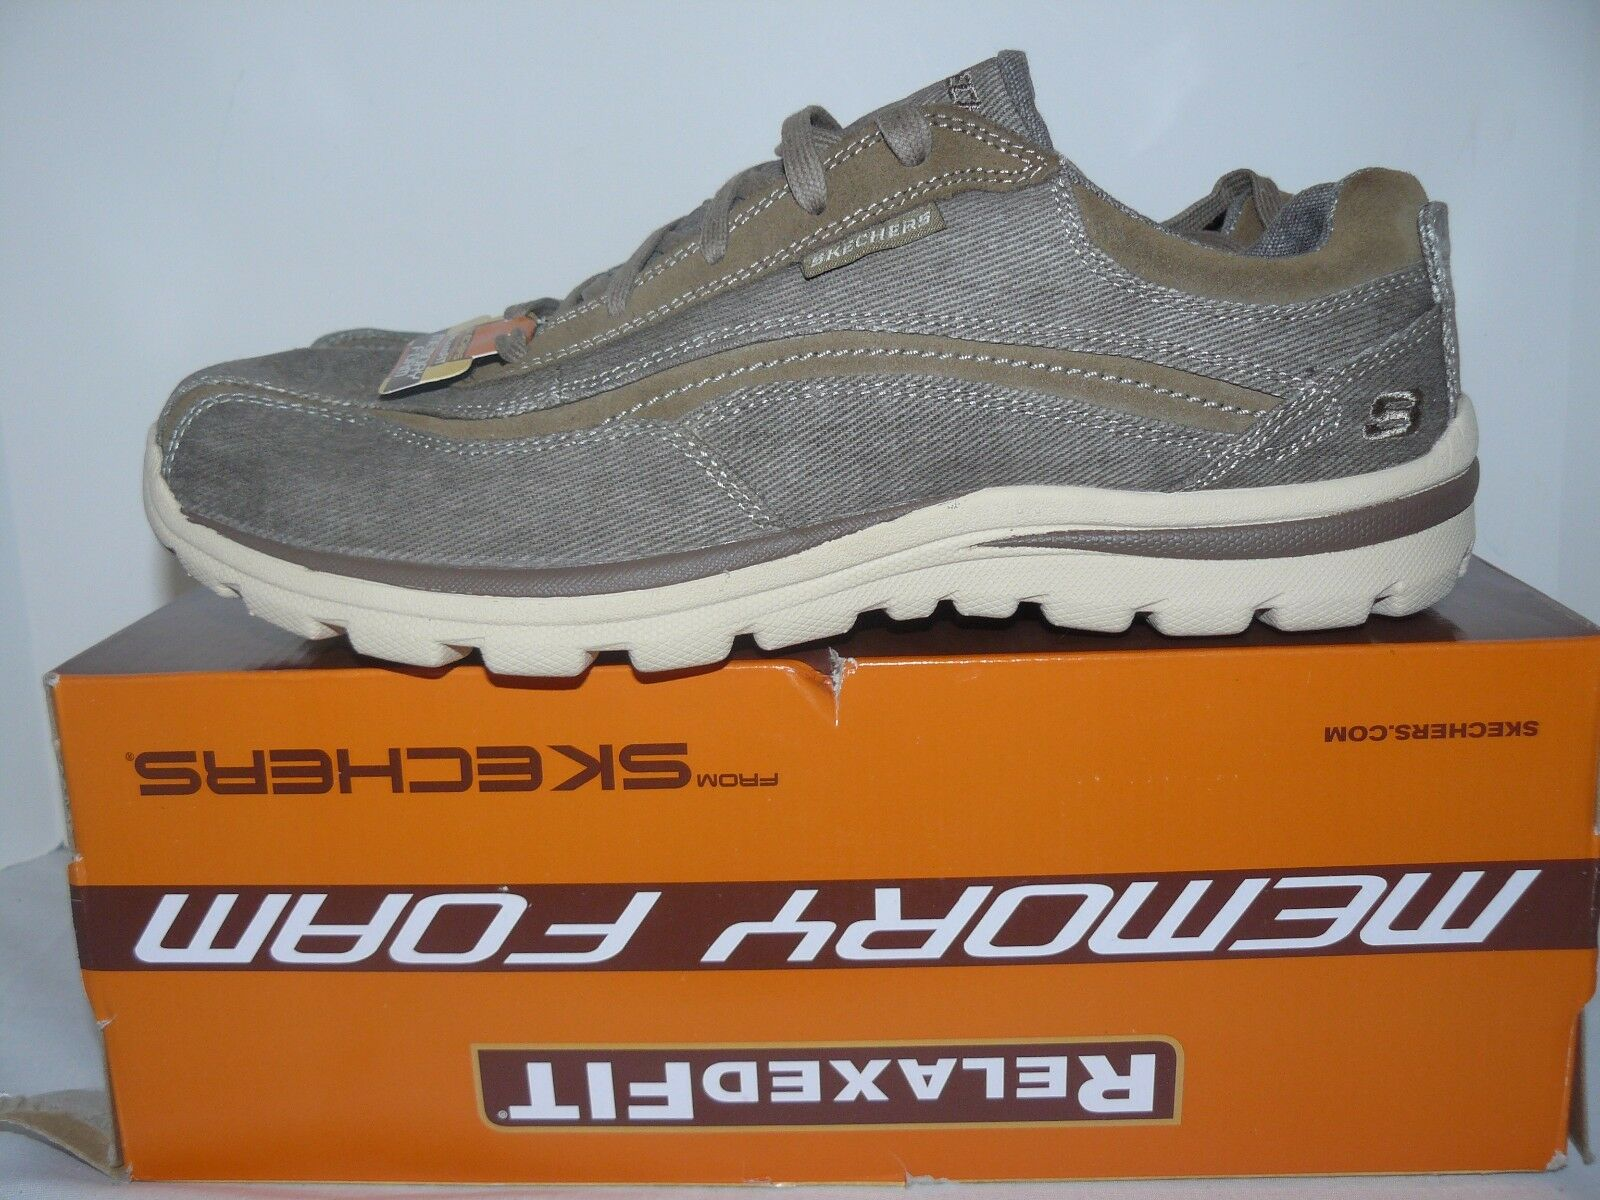 NIB Skechers Mens Superior Monavo Size 9.5, 10, 10.5 Athletic Shoes Khaki